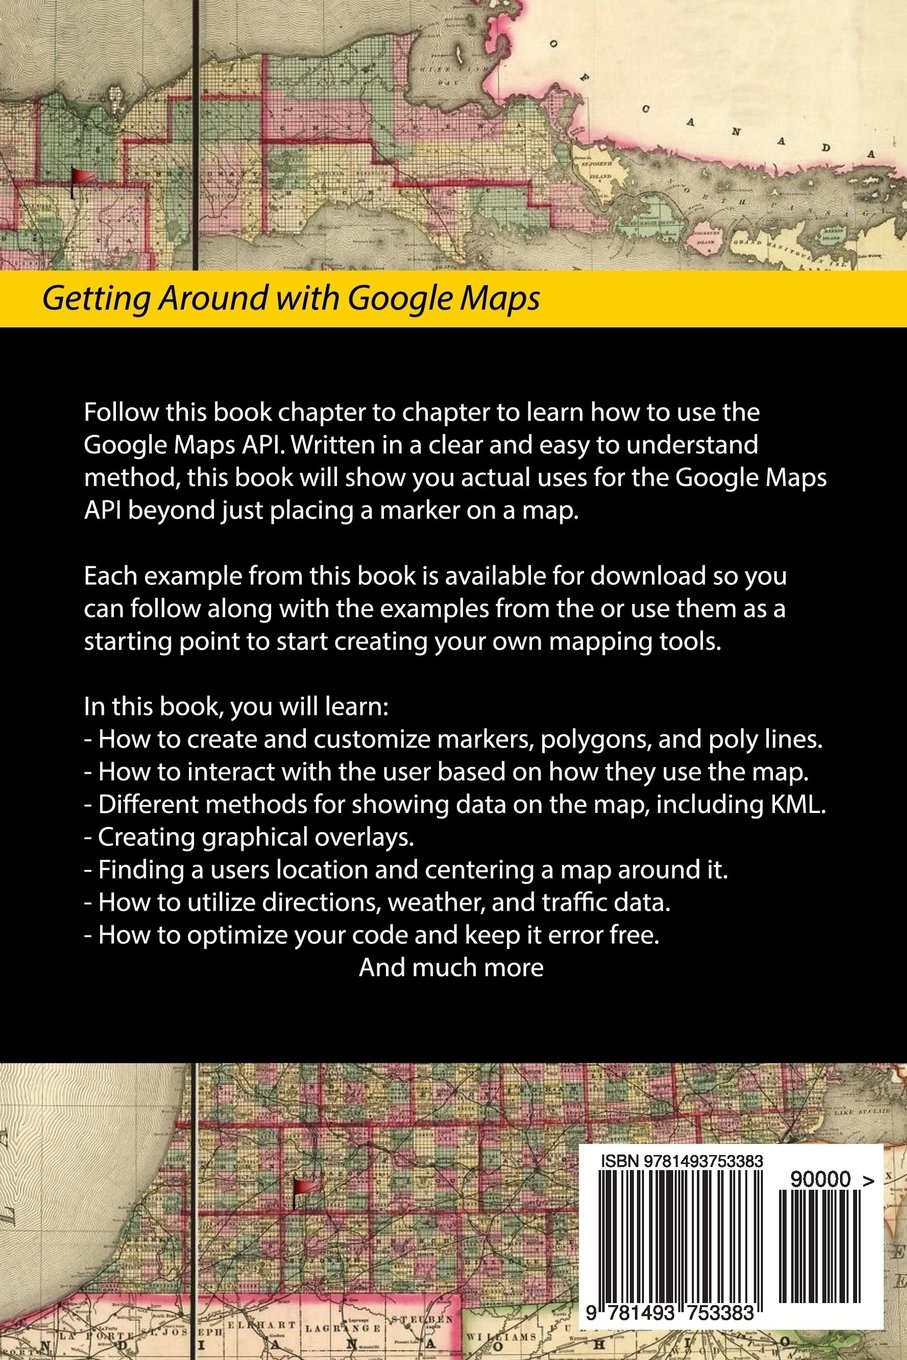 Getting Around With Google Maps A Programmers Guide To The - Google map user location